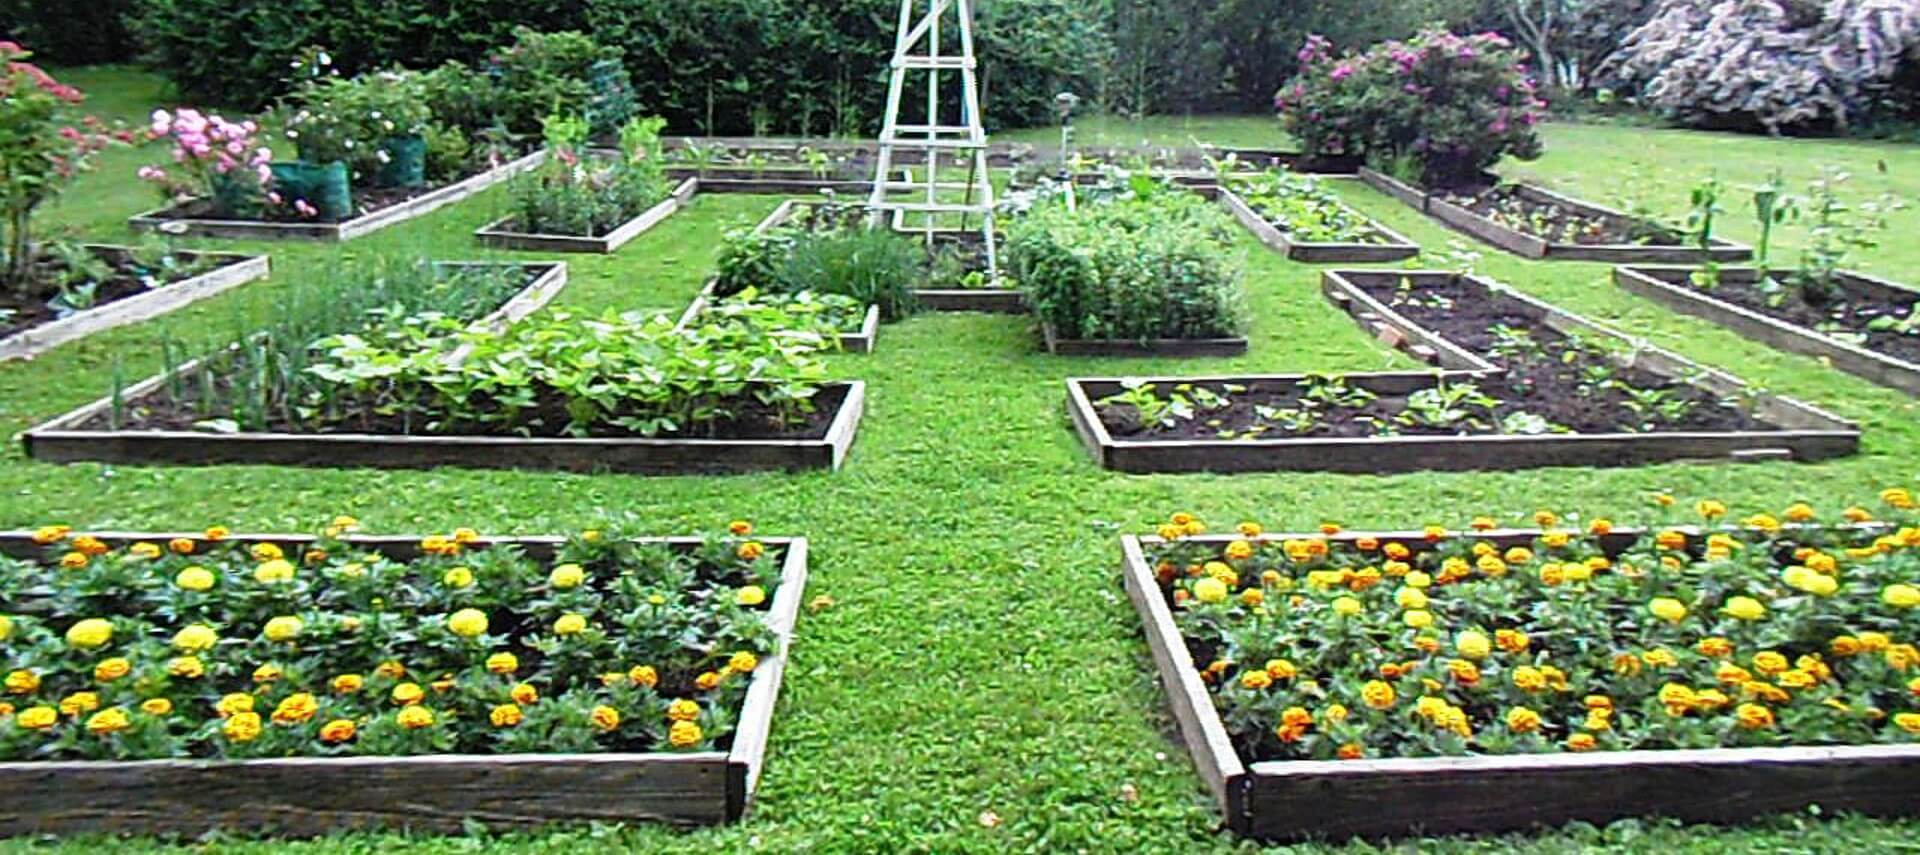 Larg grassy area with multiple plots of garden beds with vegetables and flowers